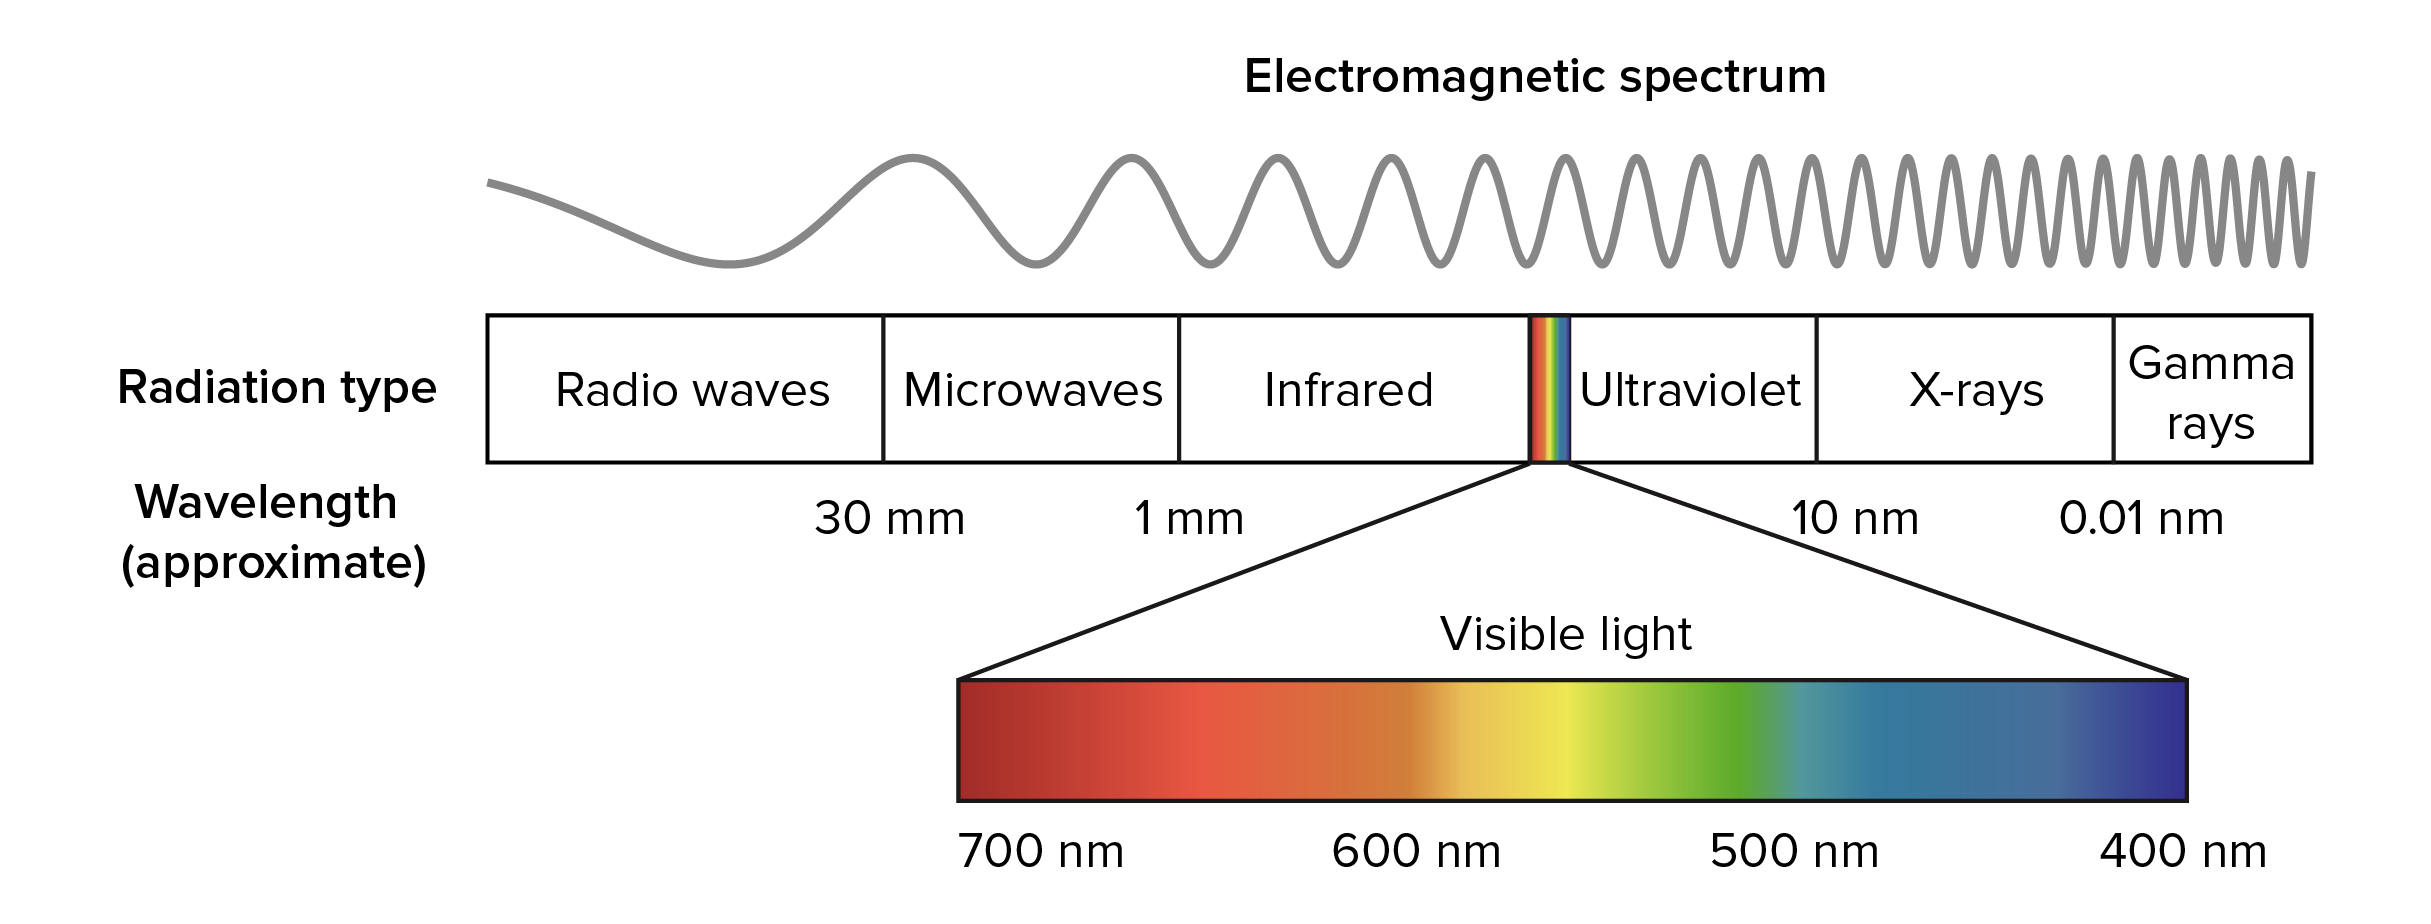 Electromagnetic spectrum used in photosynthesis photosynthesis cellular respiration differences